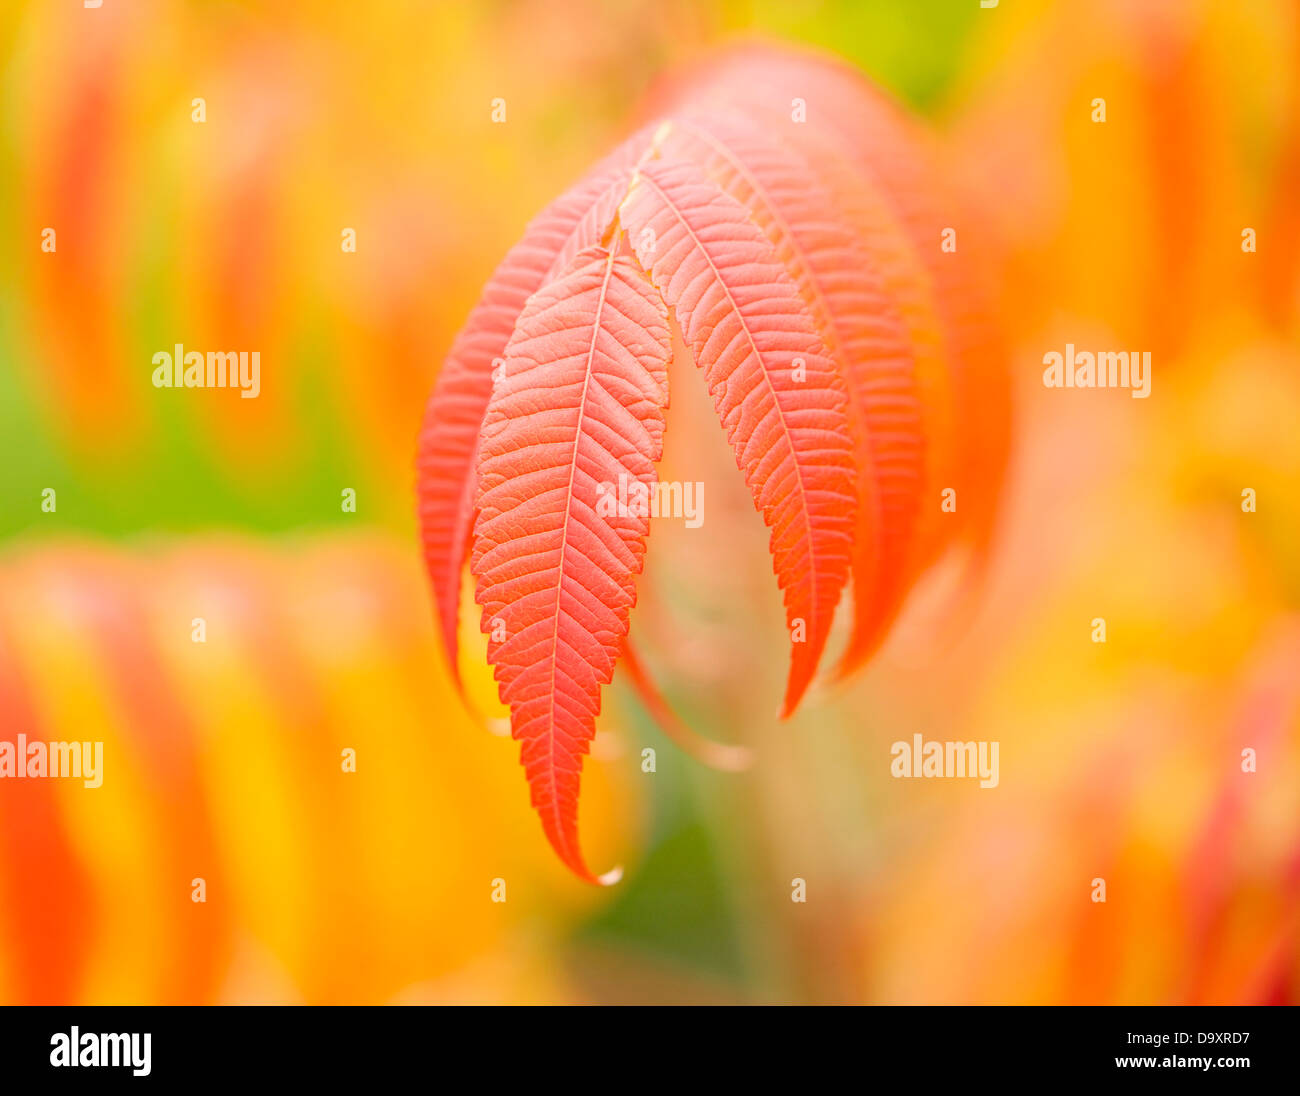 A close-up of the leaves of the stag's horn sumac. - Stock Image